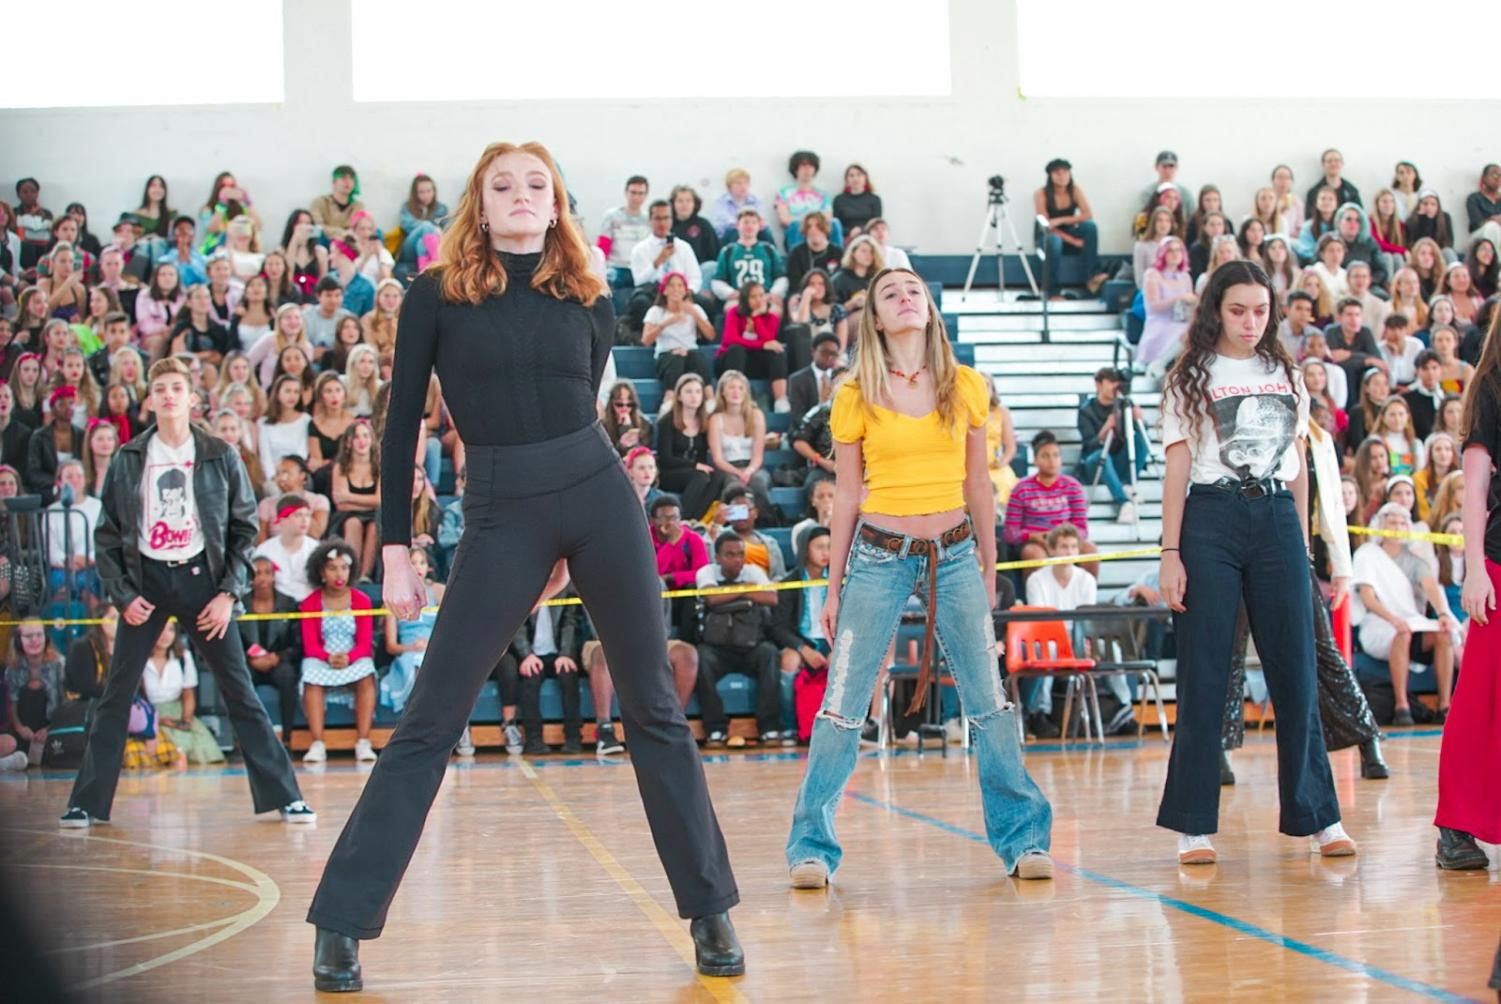 One of generation day's biggest appeals is the large variety of music played during the dances and its old-school allure.